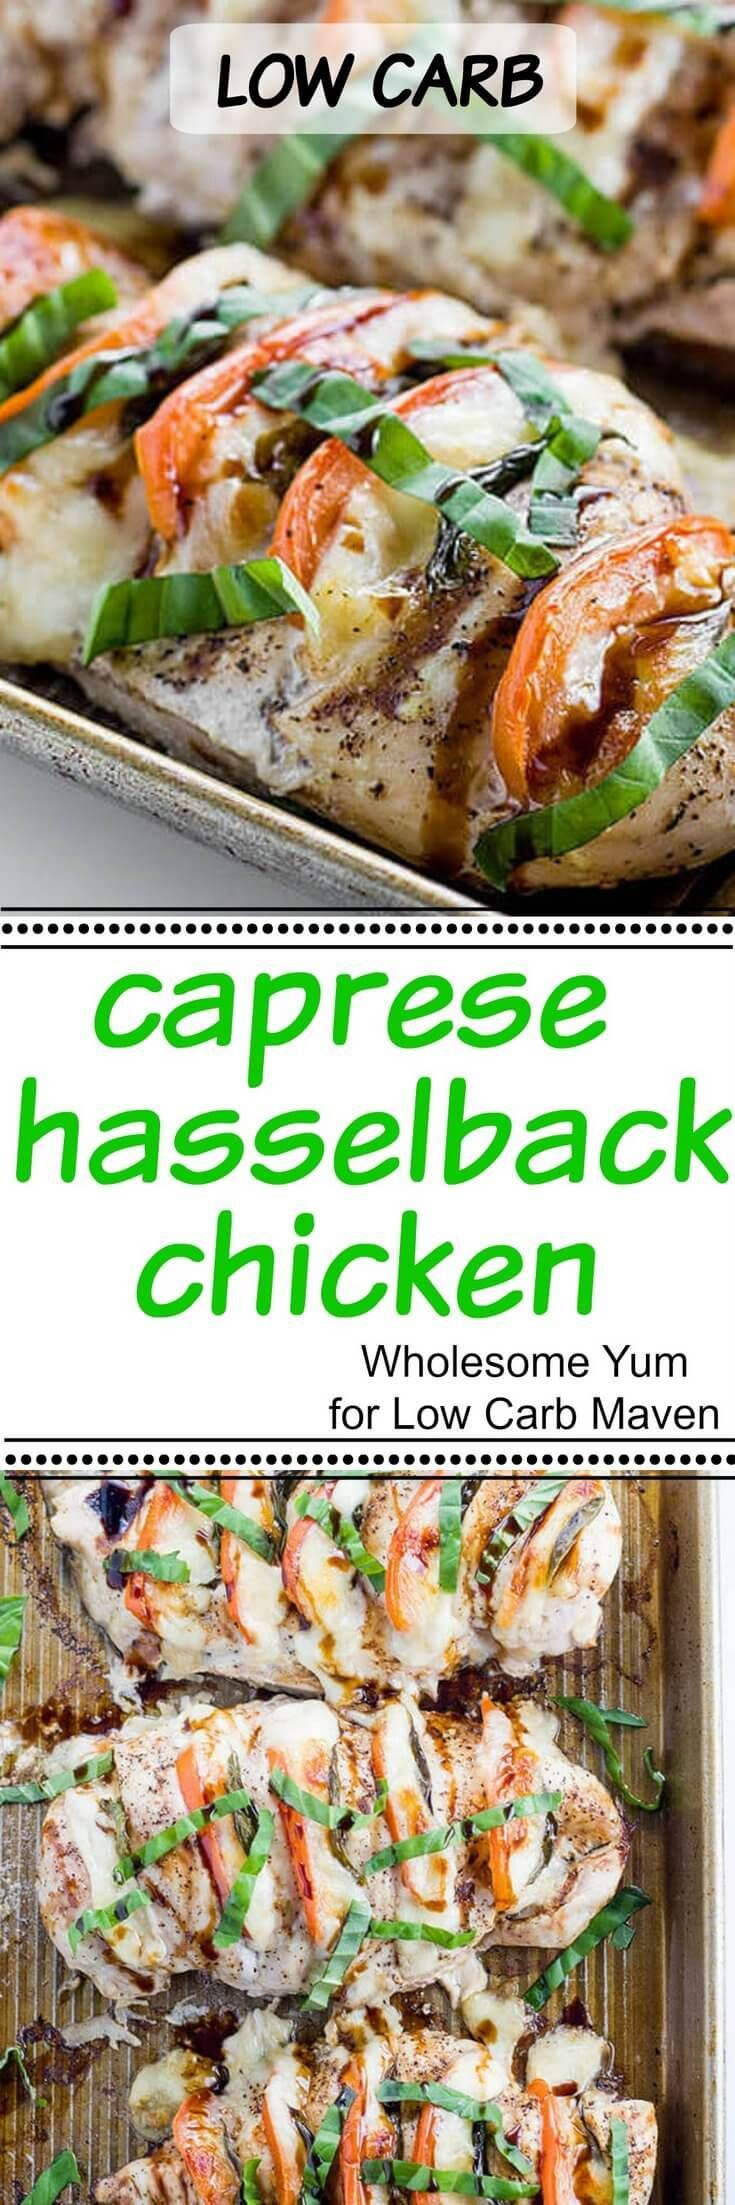 Low carb caprese hasselback chicken an easy low carb dinner recipe. keto.